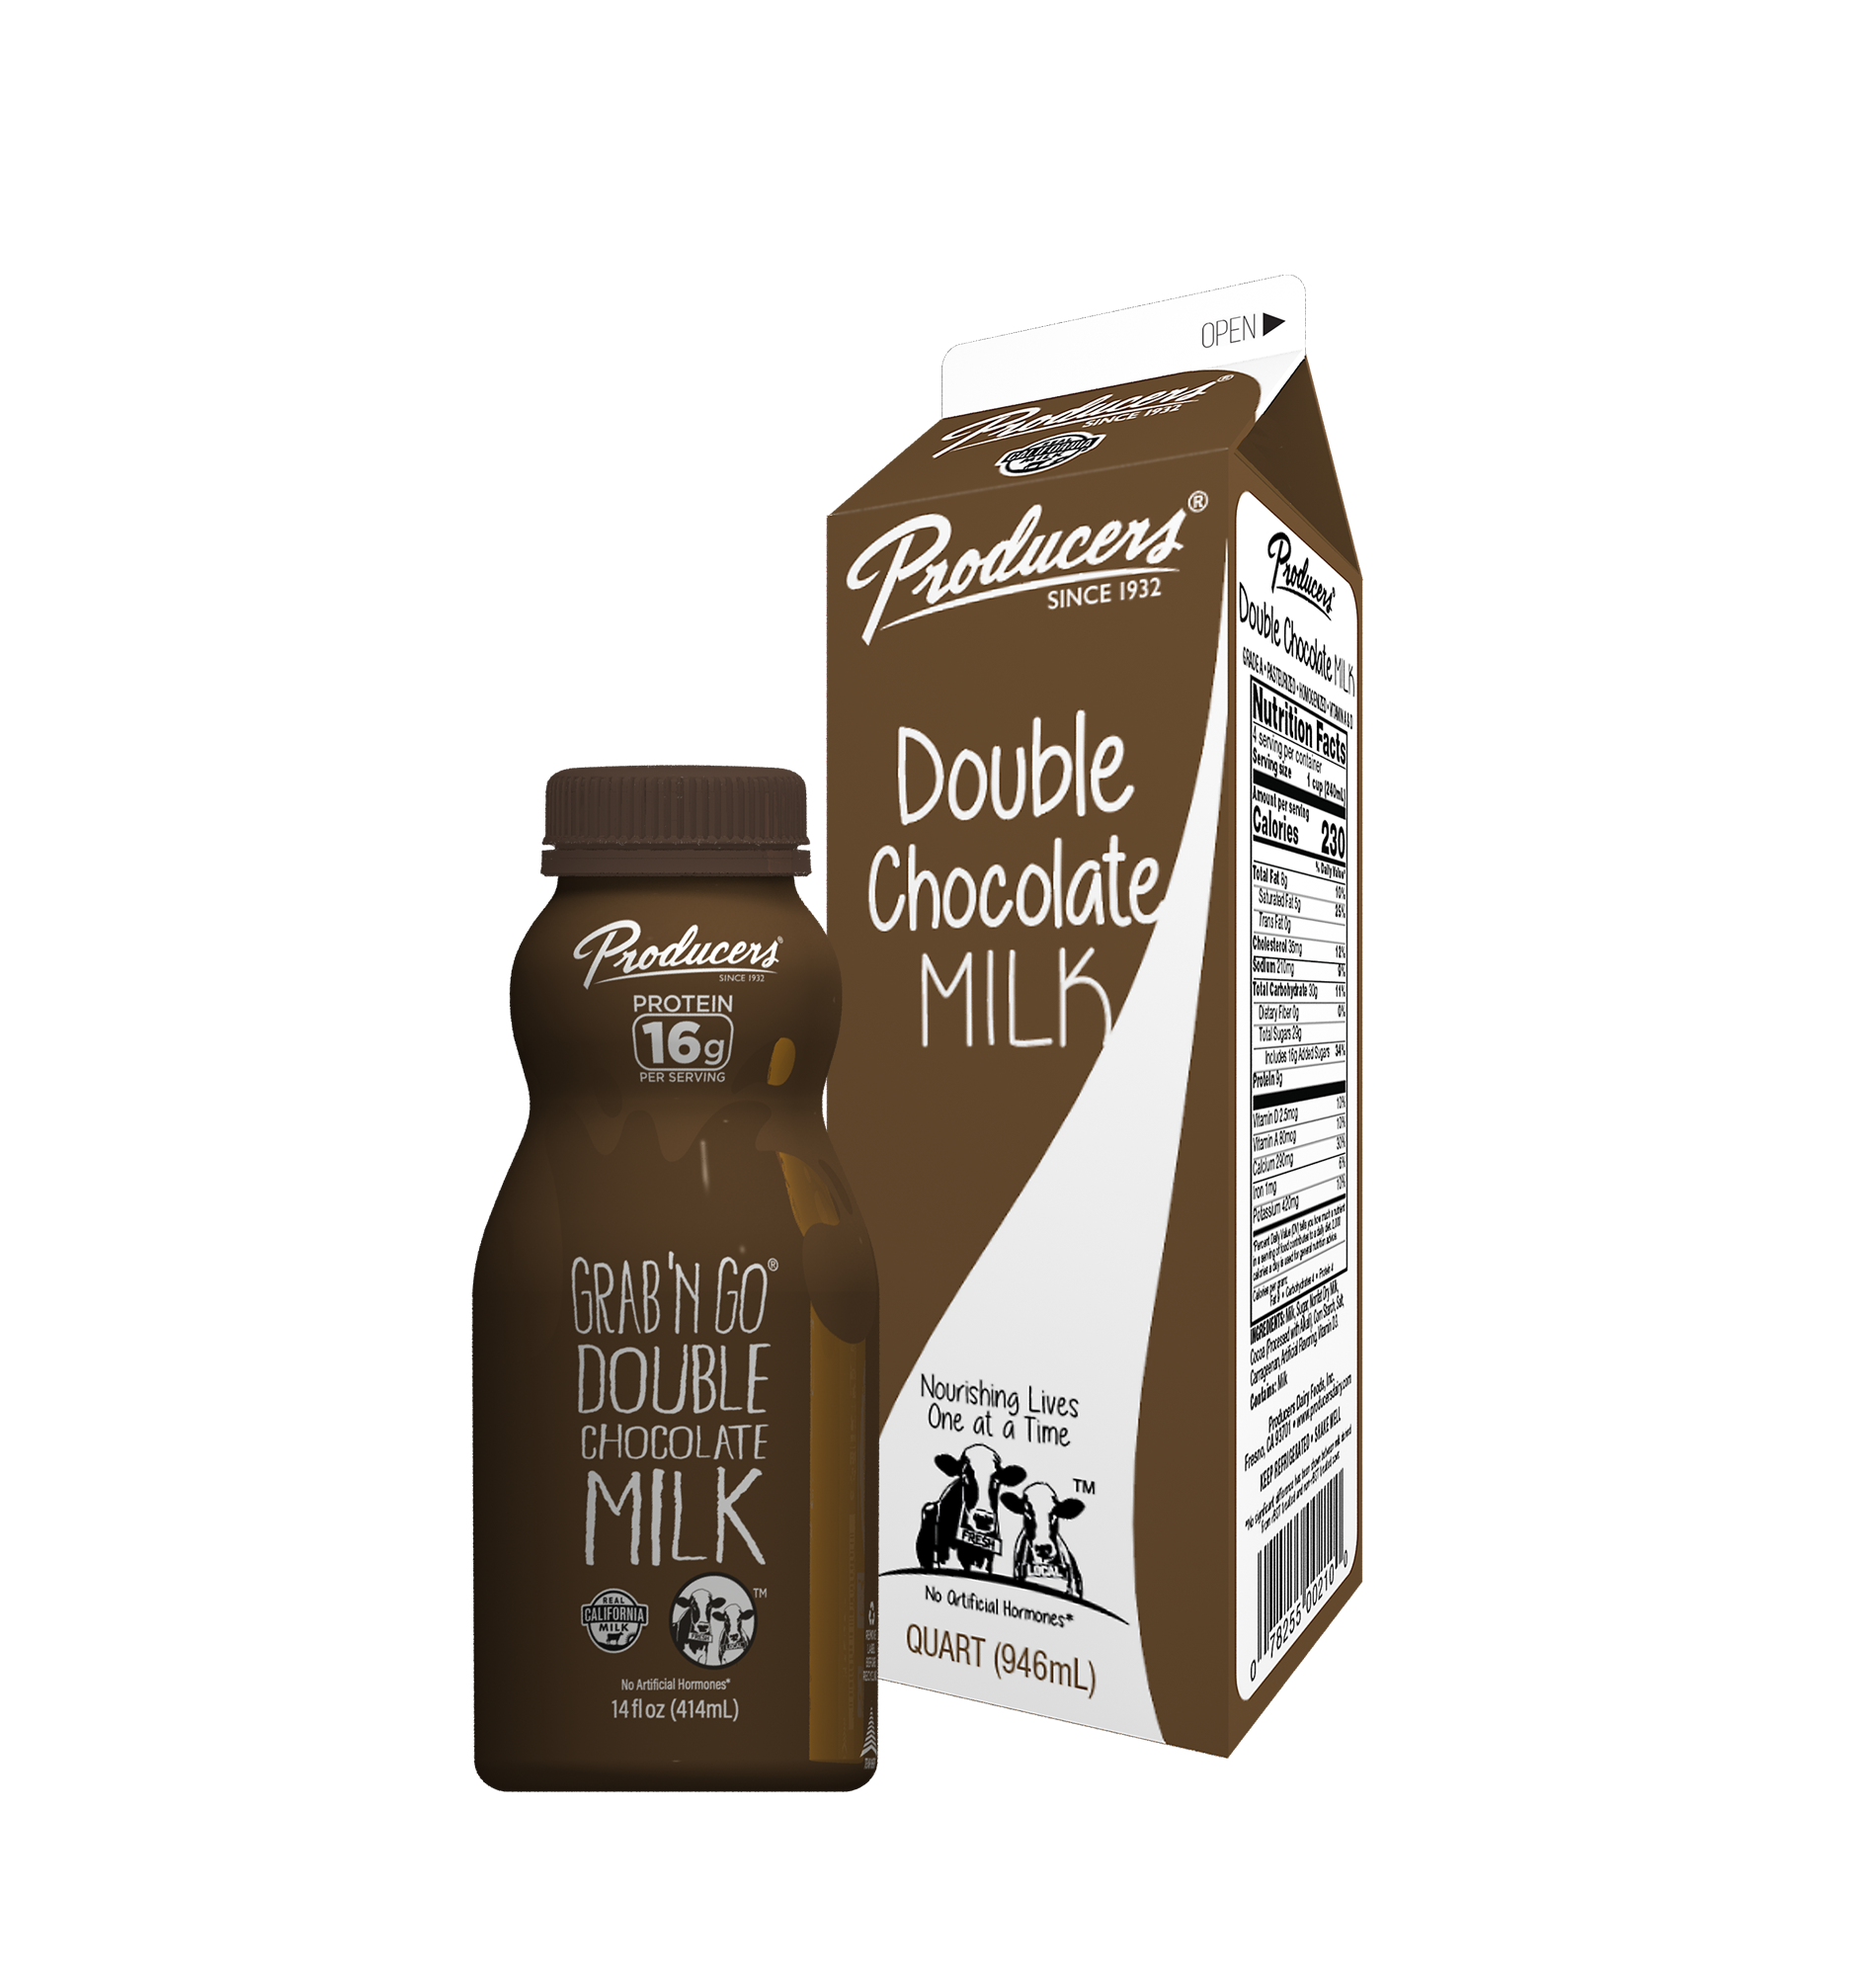 Double Chocolate Milk Family: Quart, Grab N Go